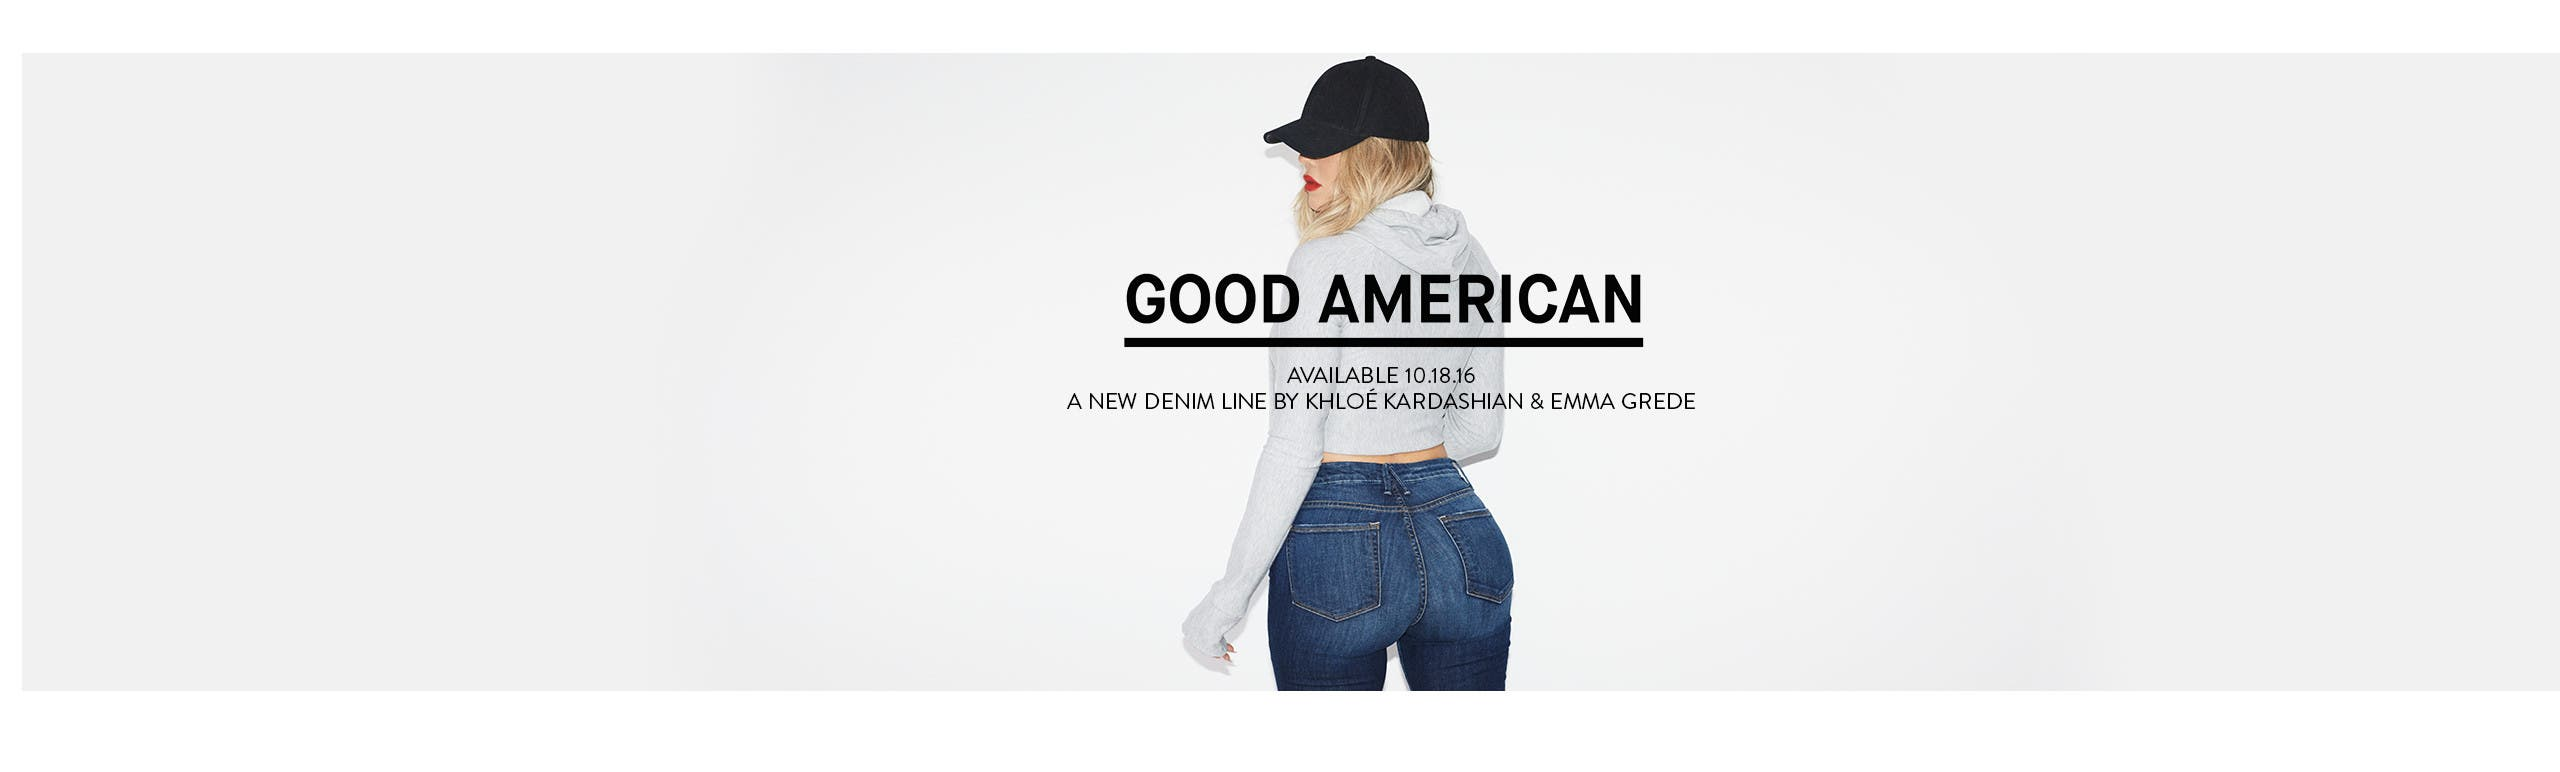 Available October 18: Good American.